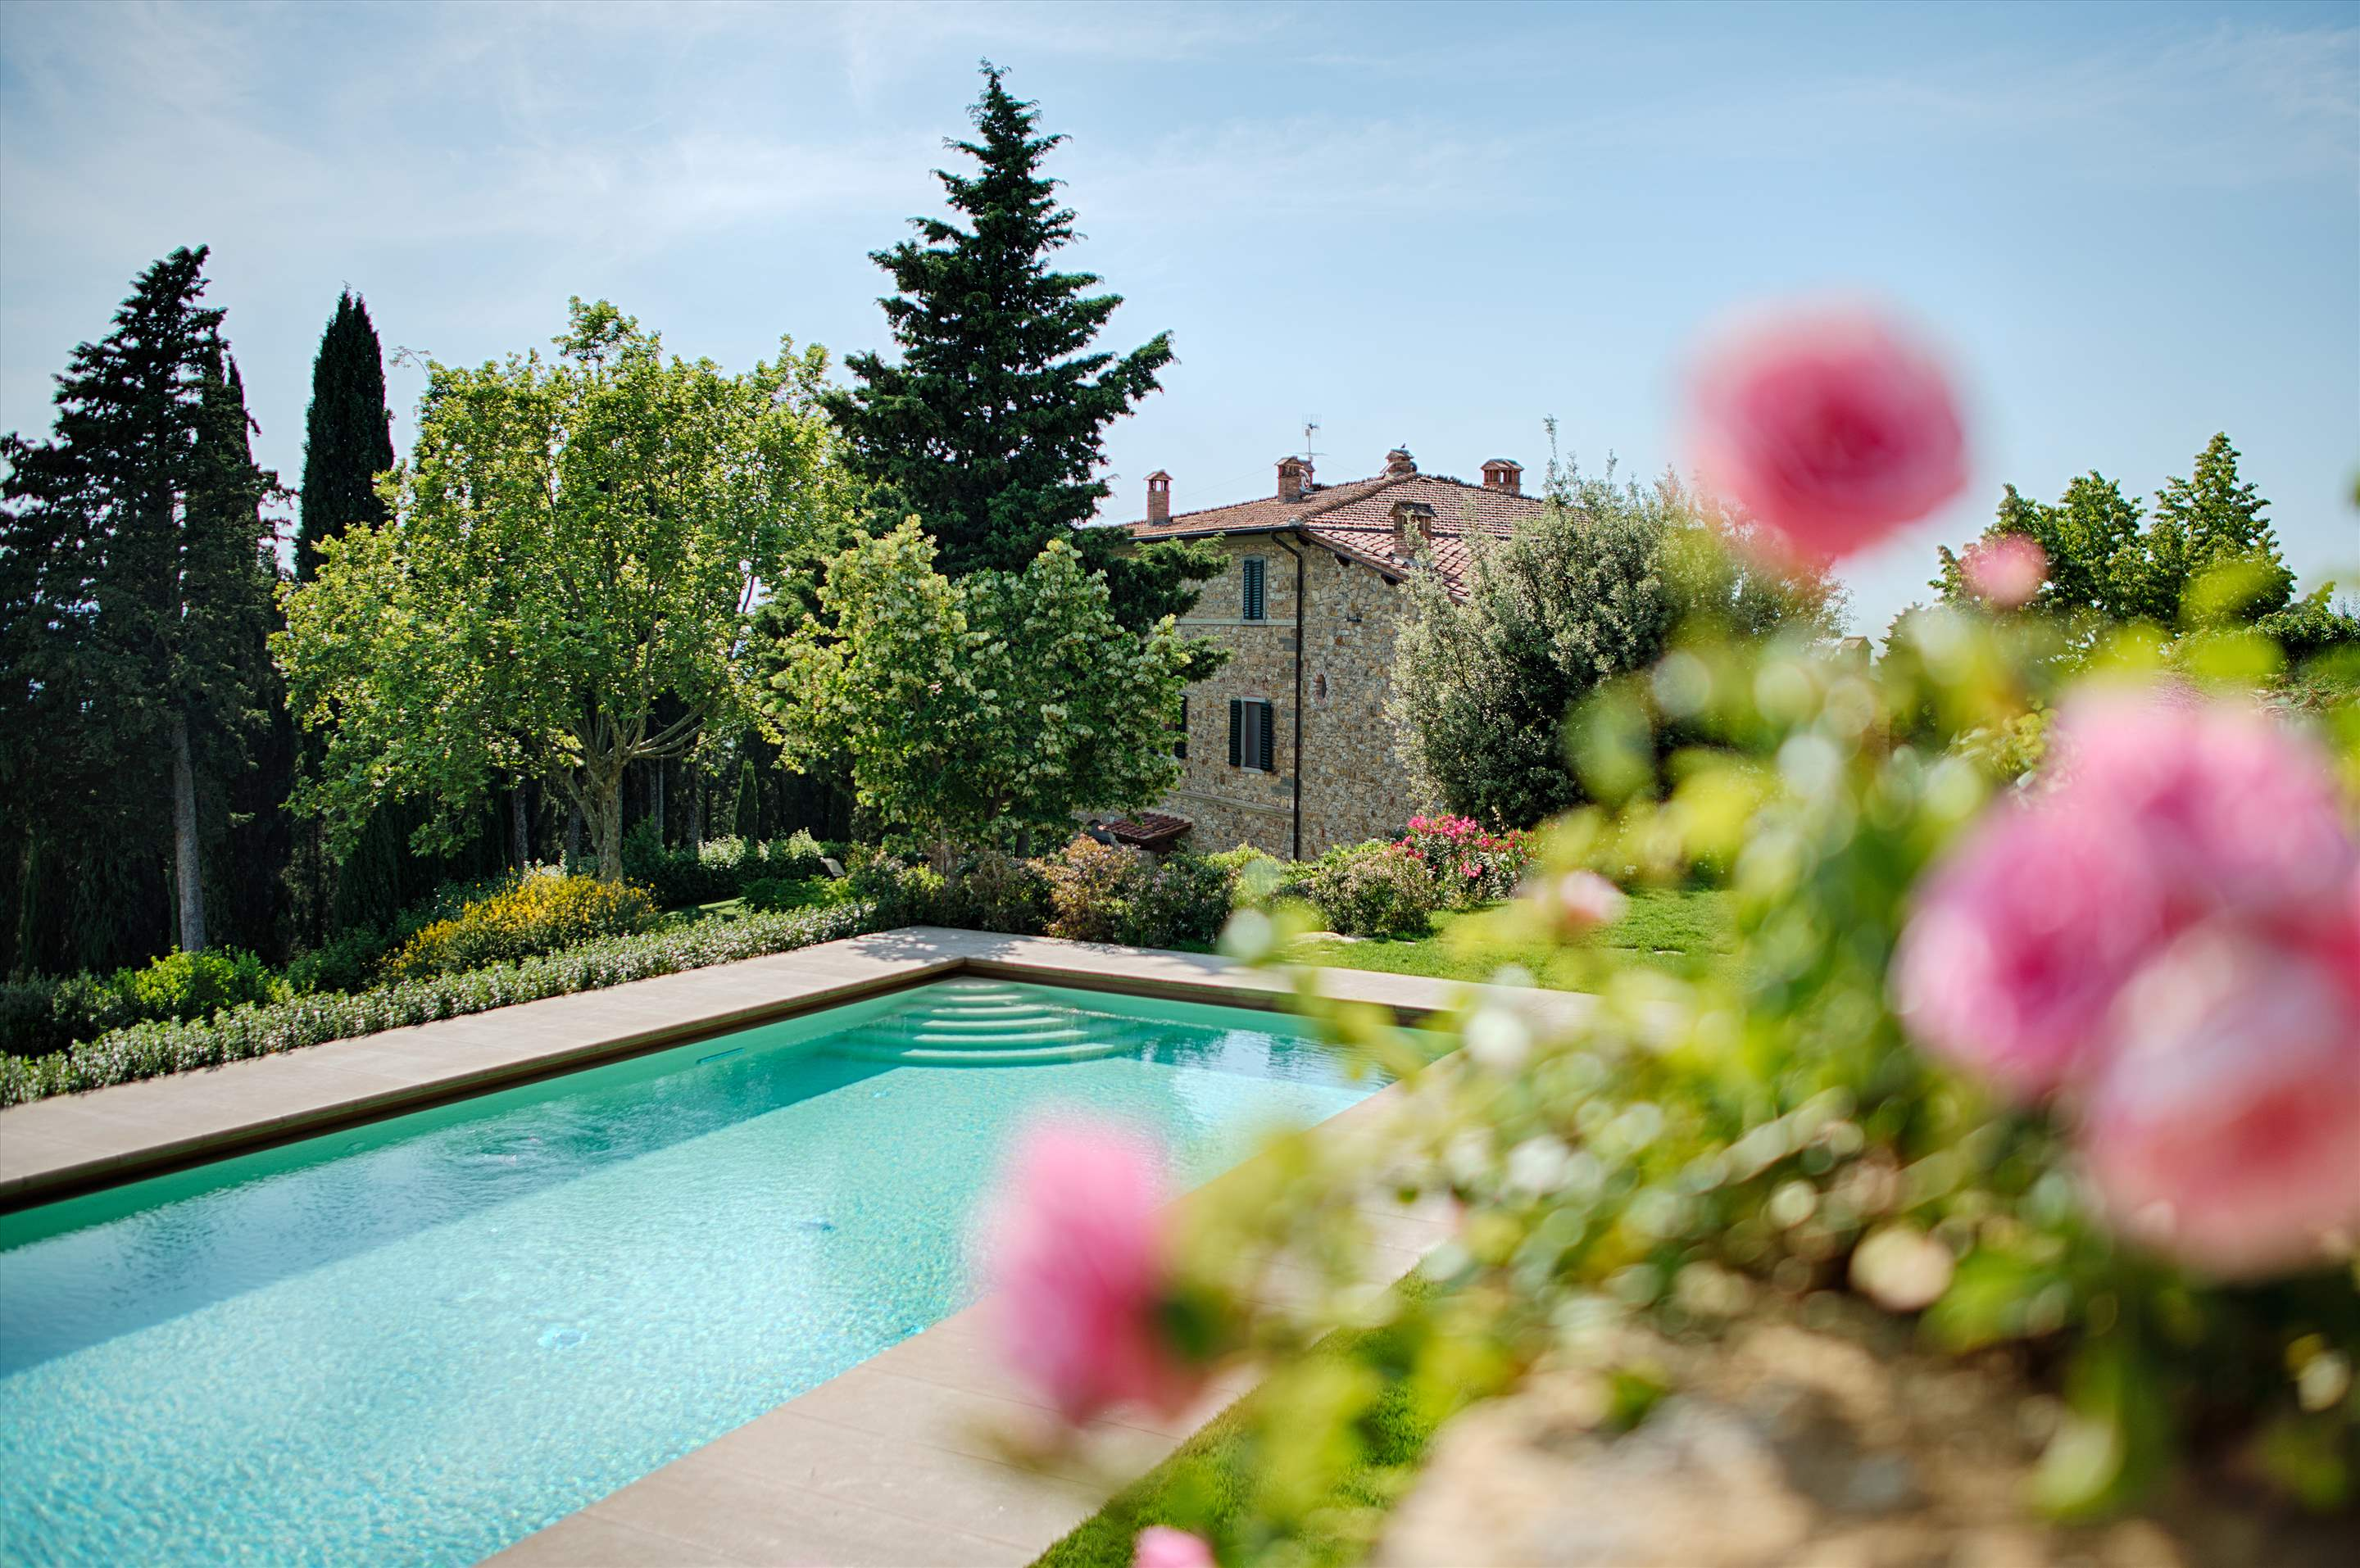 Villa La Valetta, 1 Bed Apt Rosa, 1 bedroom villa in Chianti & Countryside, Tuscany Photo #5